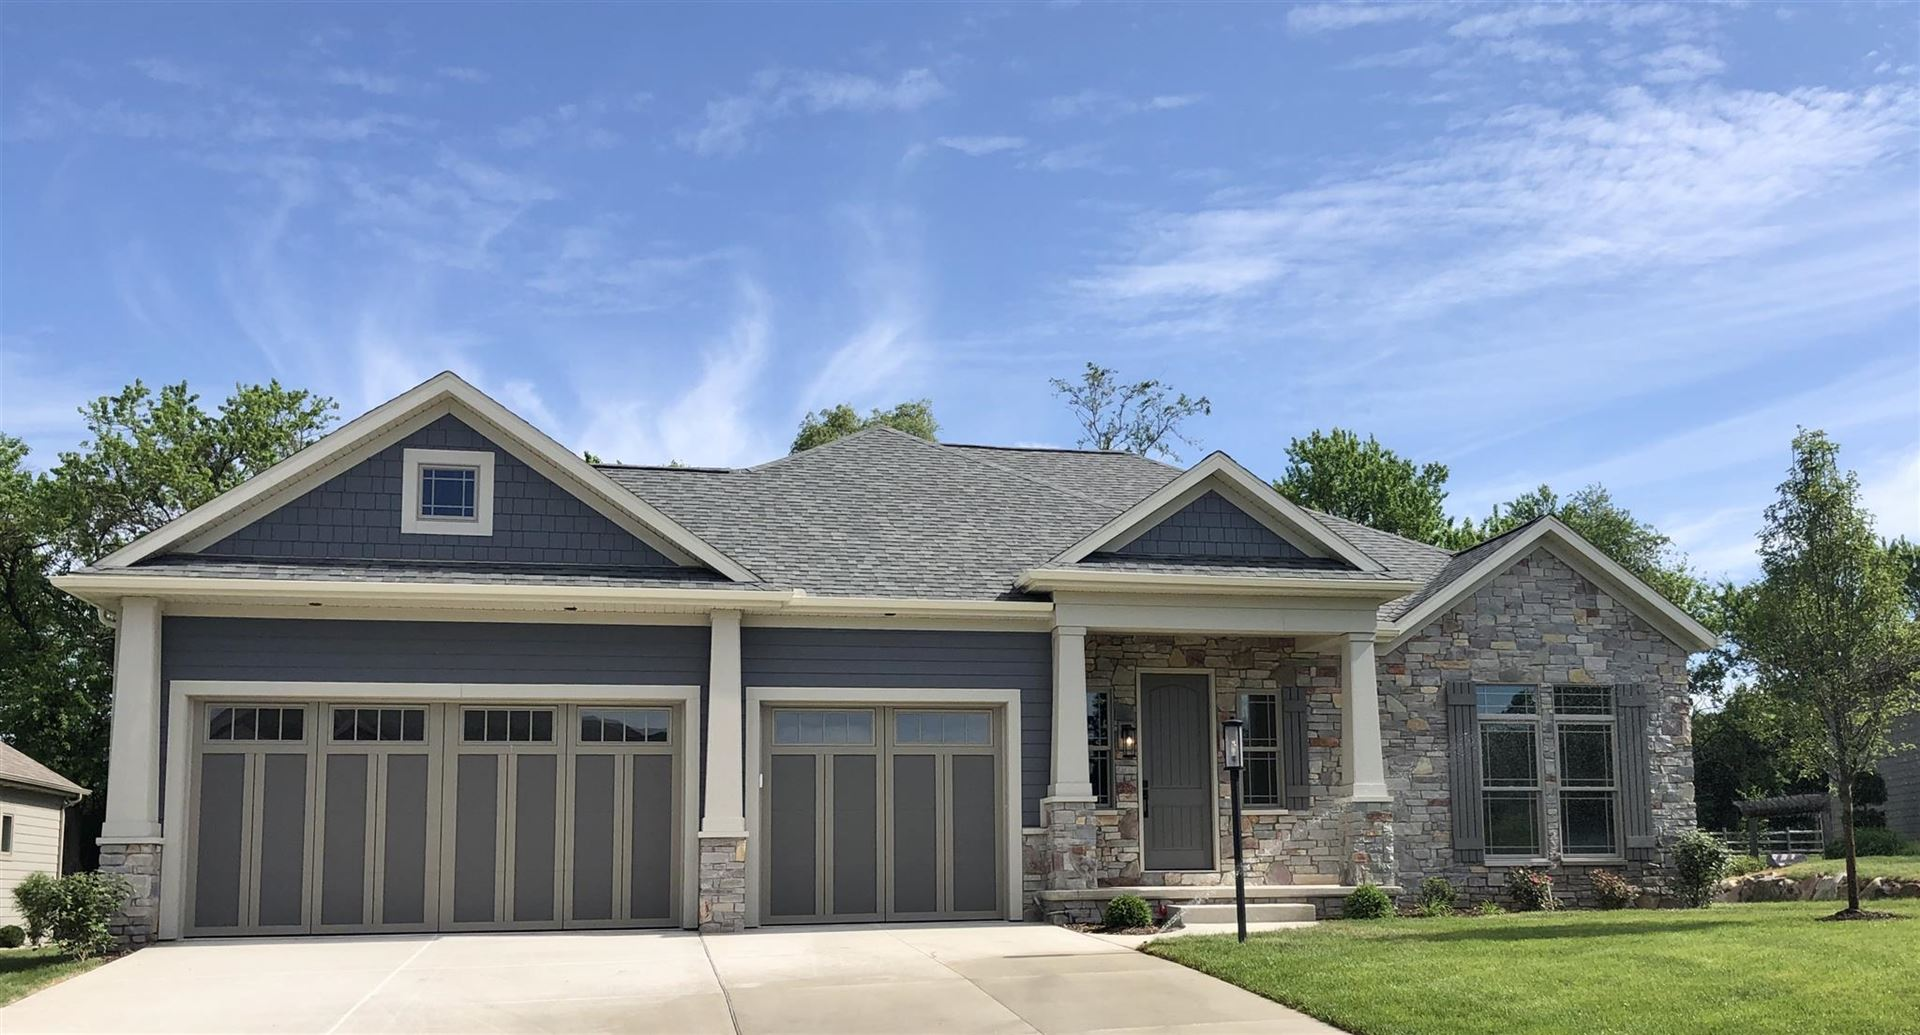 18071 Abington Court, South Bend, IN 46637 - #: 202106543